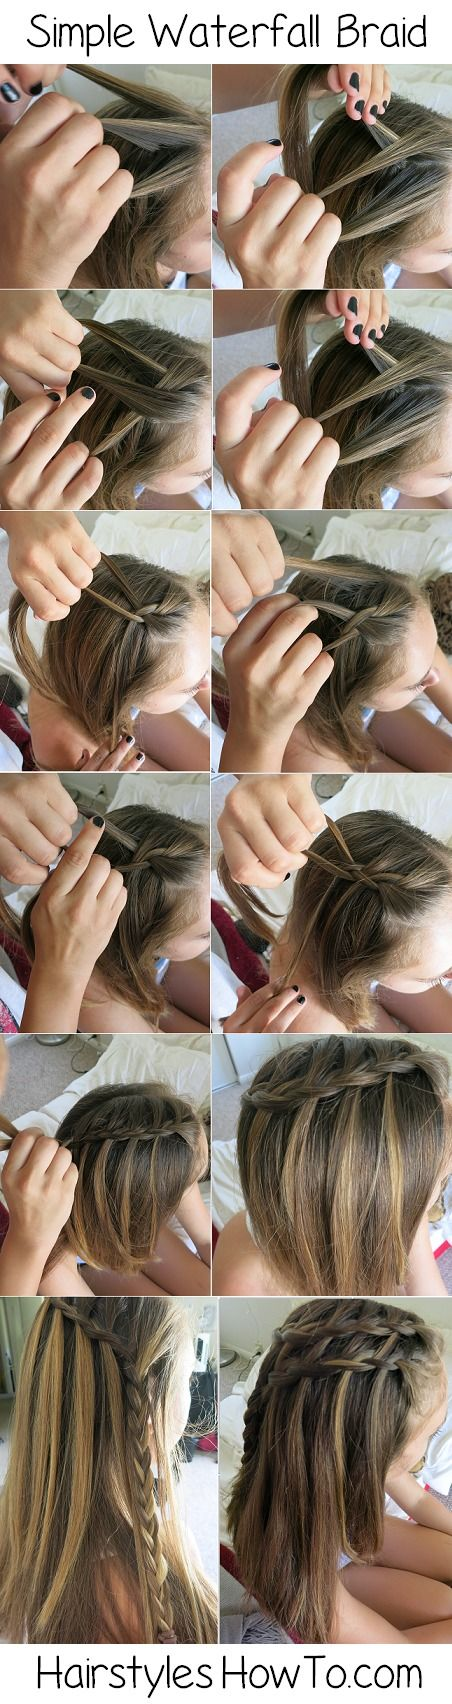 10 Step by Step Braided Hair Tutorials to Keep It Classy | From stupidhair